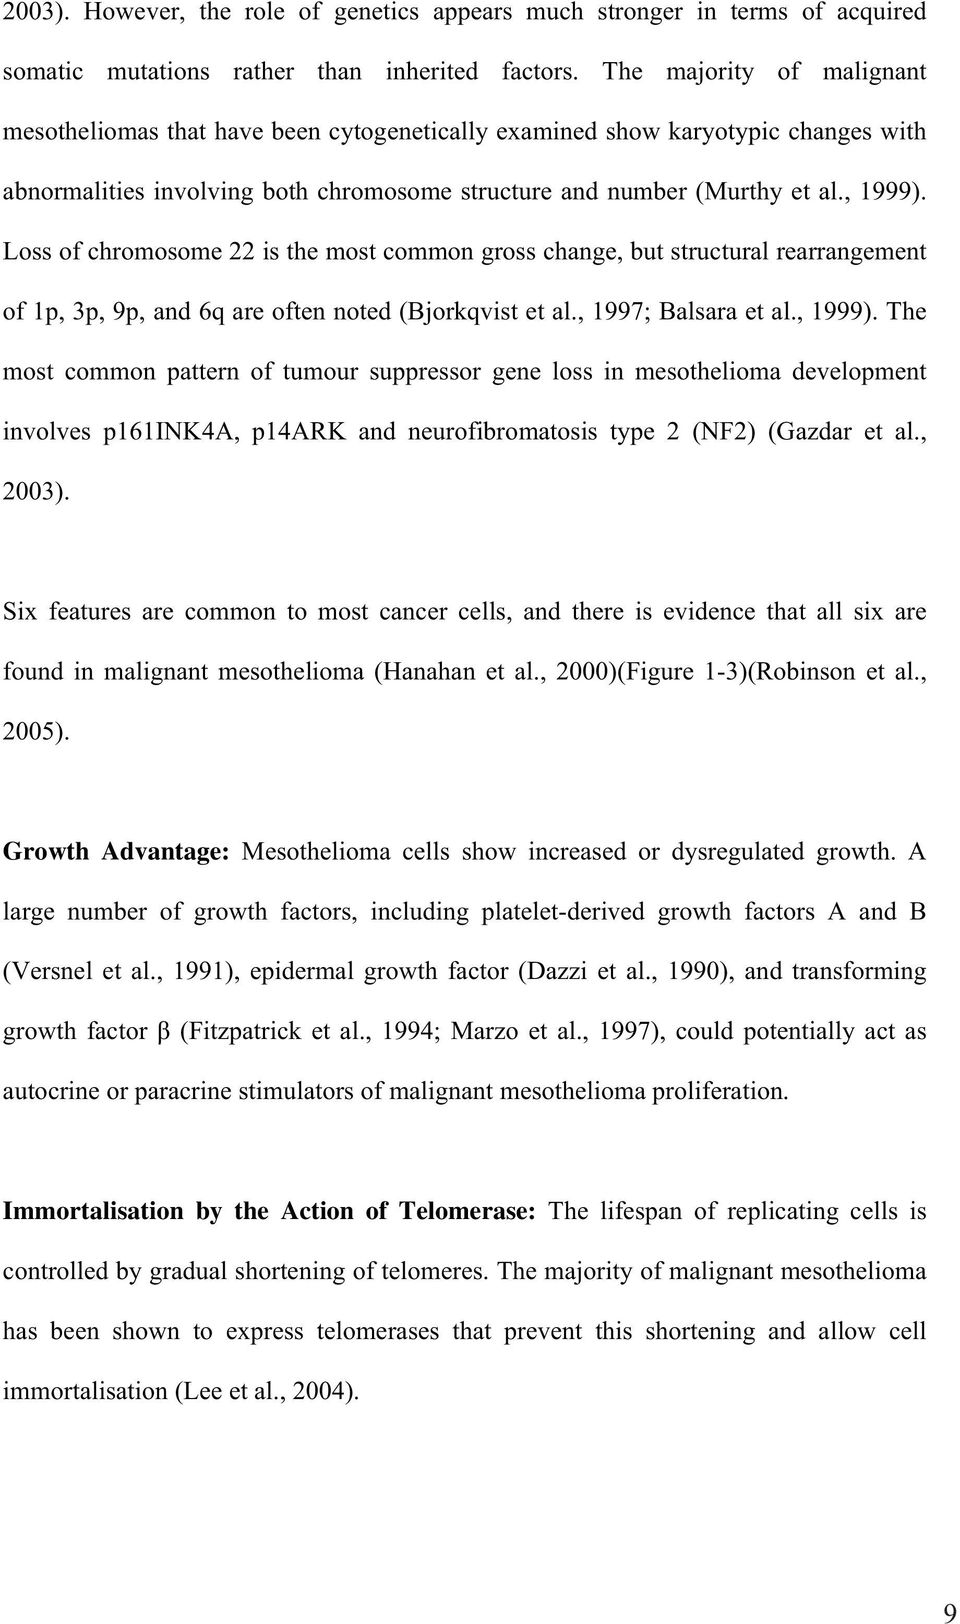 Loss of chromosome 22 is the most common gross change, but structural rearrangement of 1p, 3p, 9p, and 6q are often noted (Bjorkqvist et al., 1997; Balsara et al., 1999).